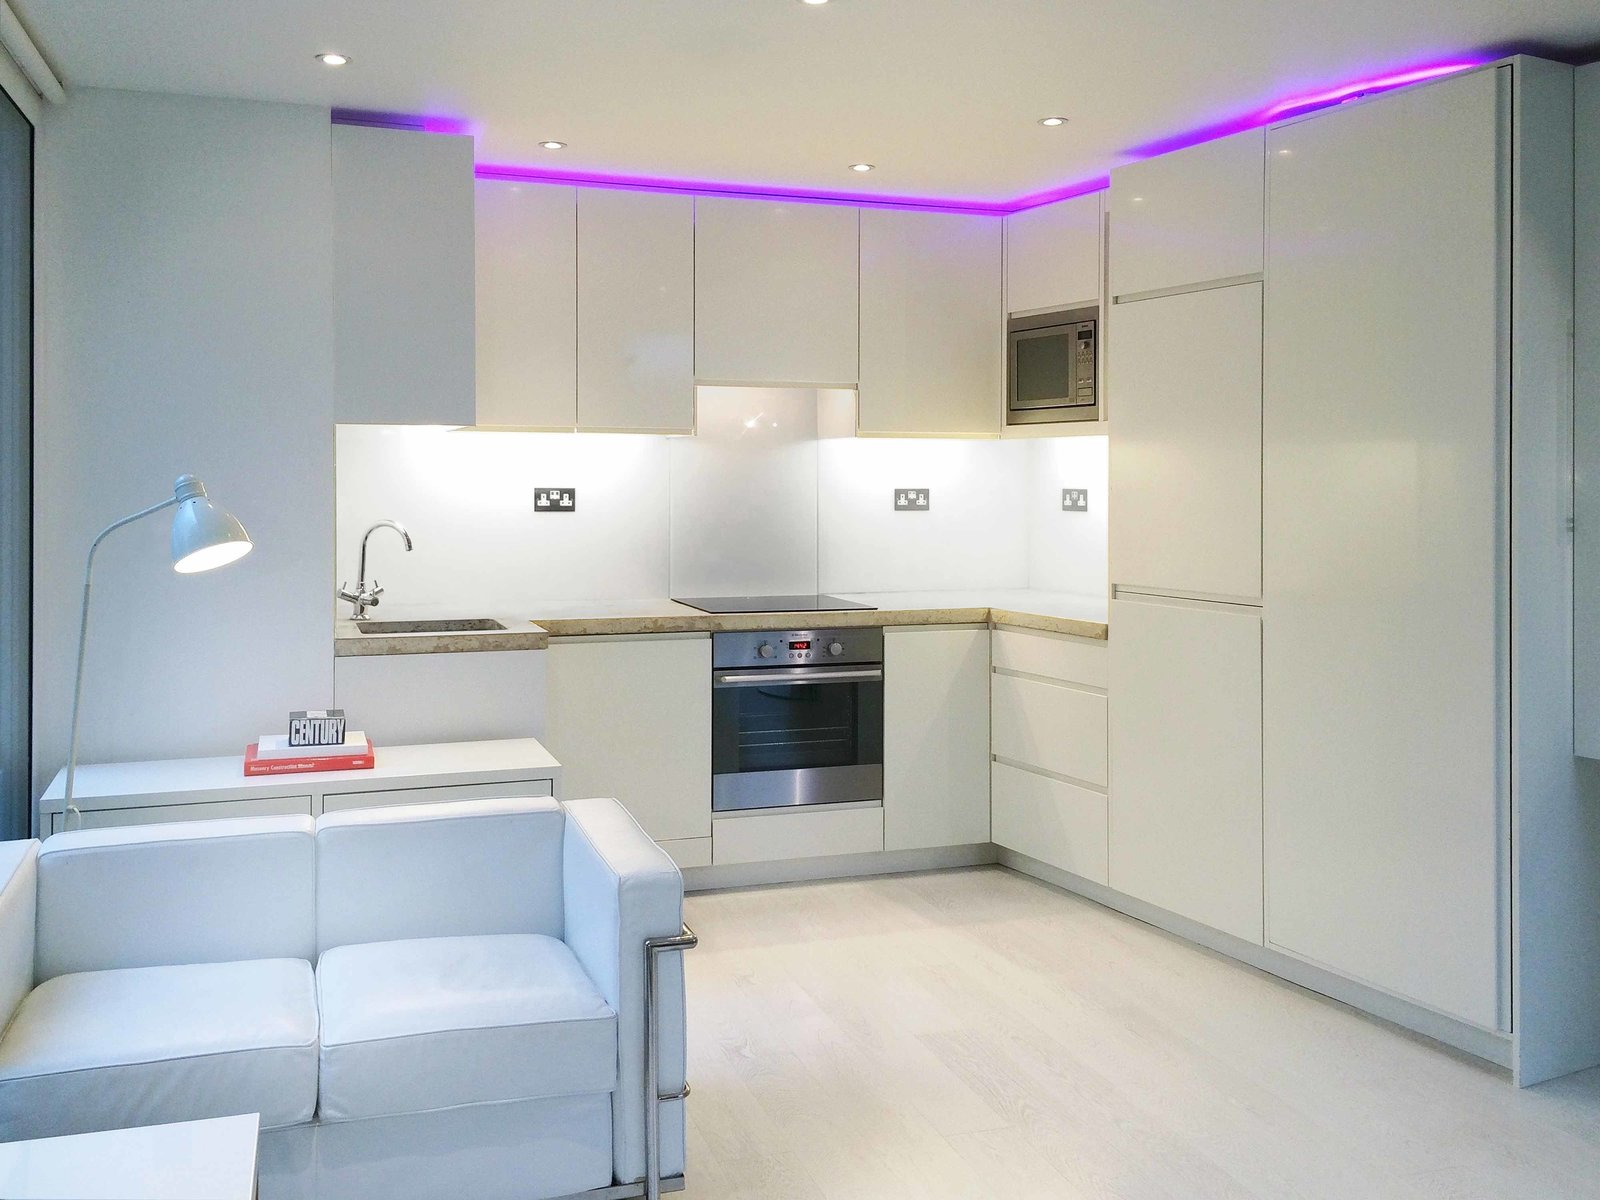 The kitchen cupboards have the same high-gloss cladding as the collapsible workstation. The countertop is polished concrete from Shaw Interiors, and the lighting is inset LED's. The space also features recessed ceiling speakers from B&W. A Tiny Live/Work Addition Crowns a Historic London House - Photo 7 of 7